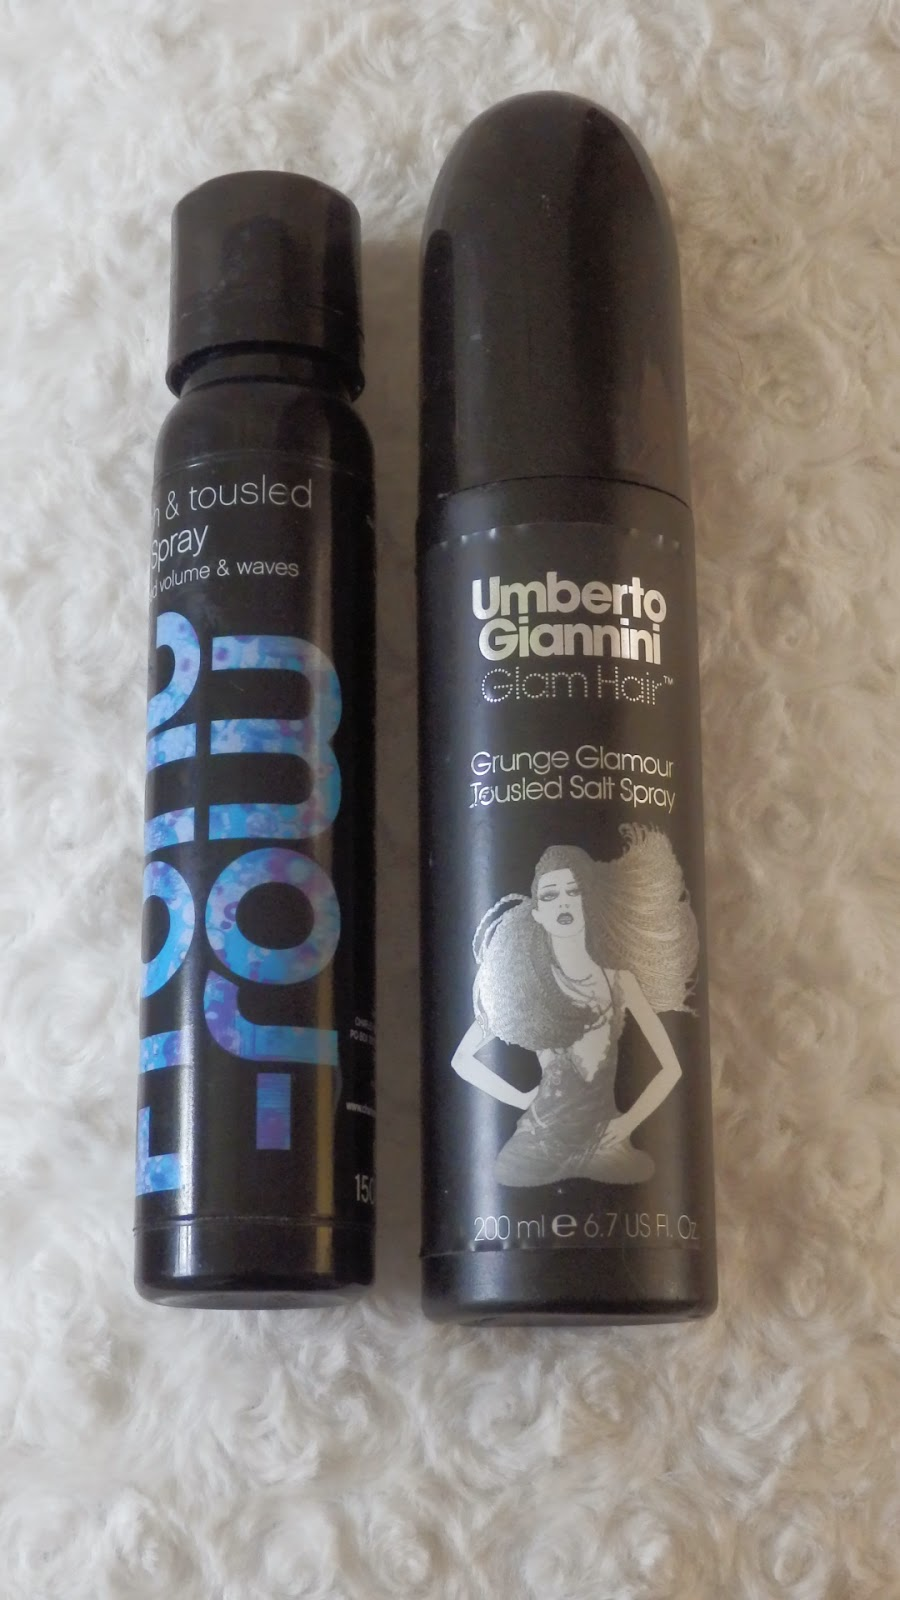 Sea Salt Spray Charles Worthington Rough & Tousled Salt Spray & Umberto Giannini Grunge Glamour Tousled Salt Spray